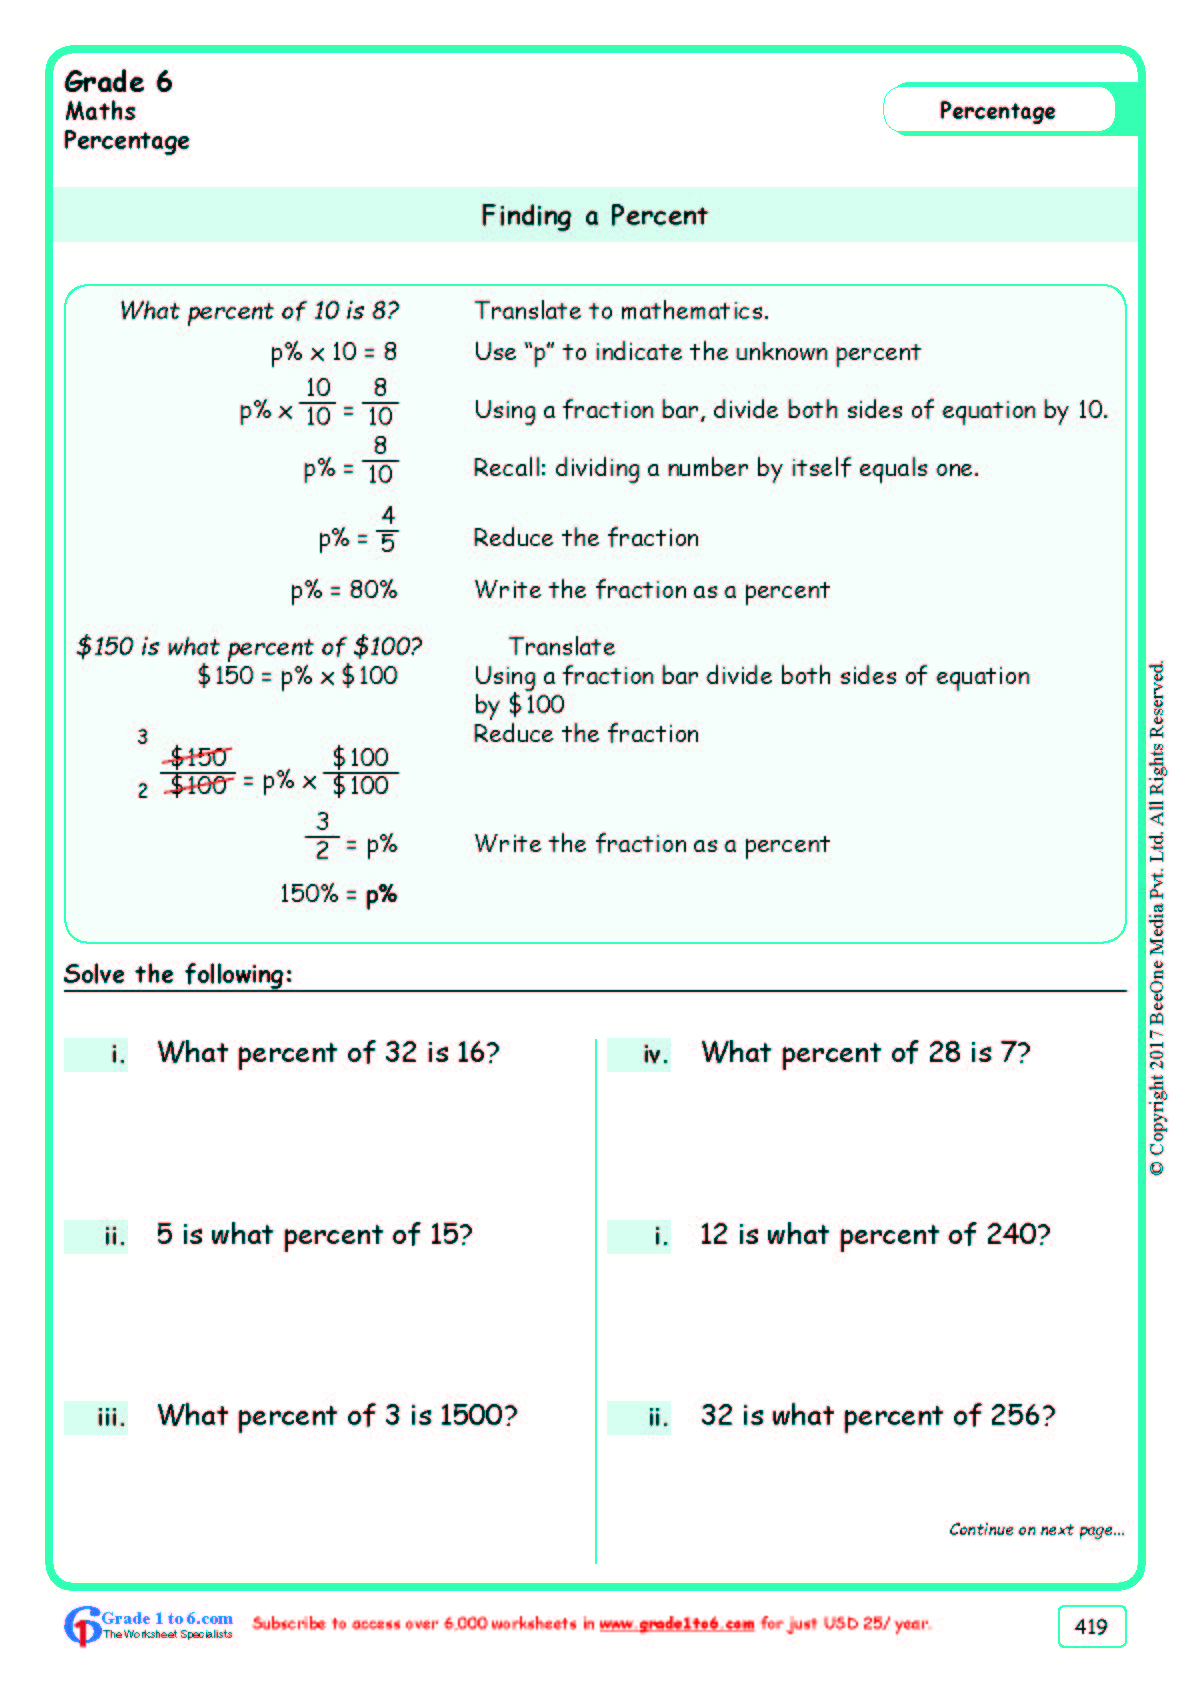 Grade 6 Class Six Percentages Worksheets Ade1to6